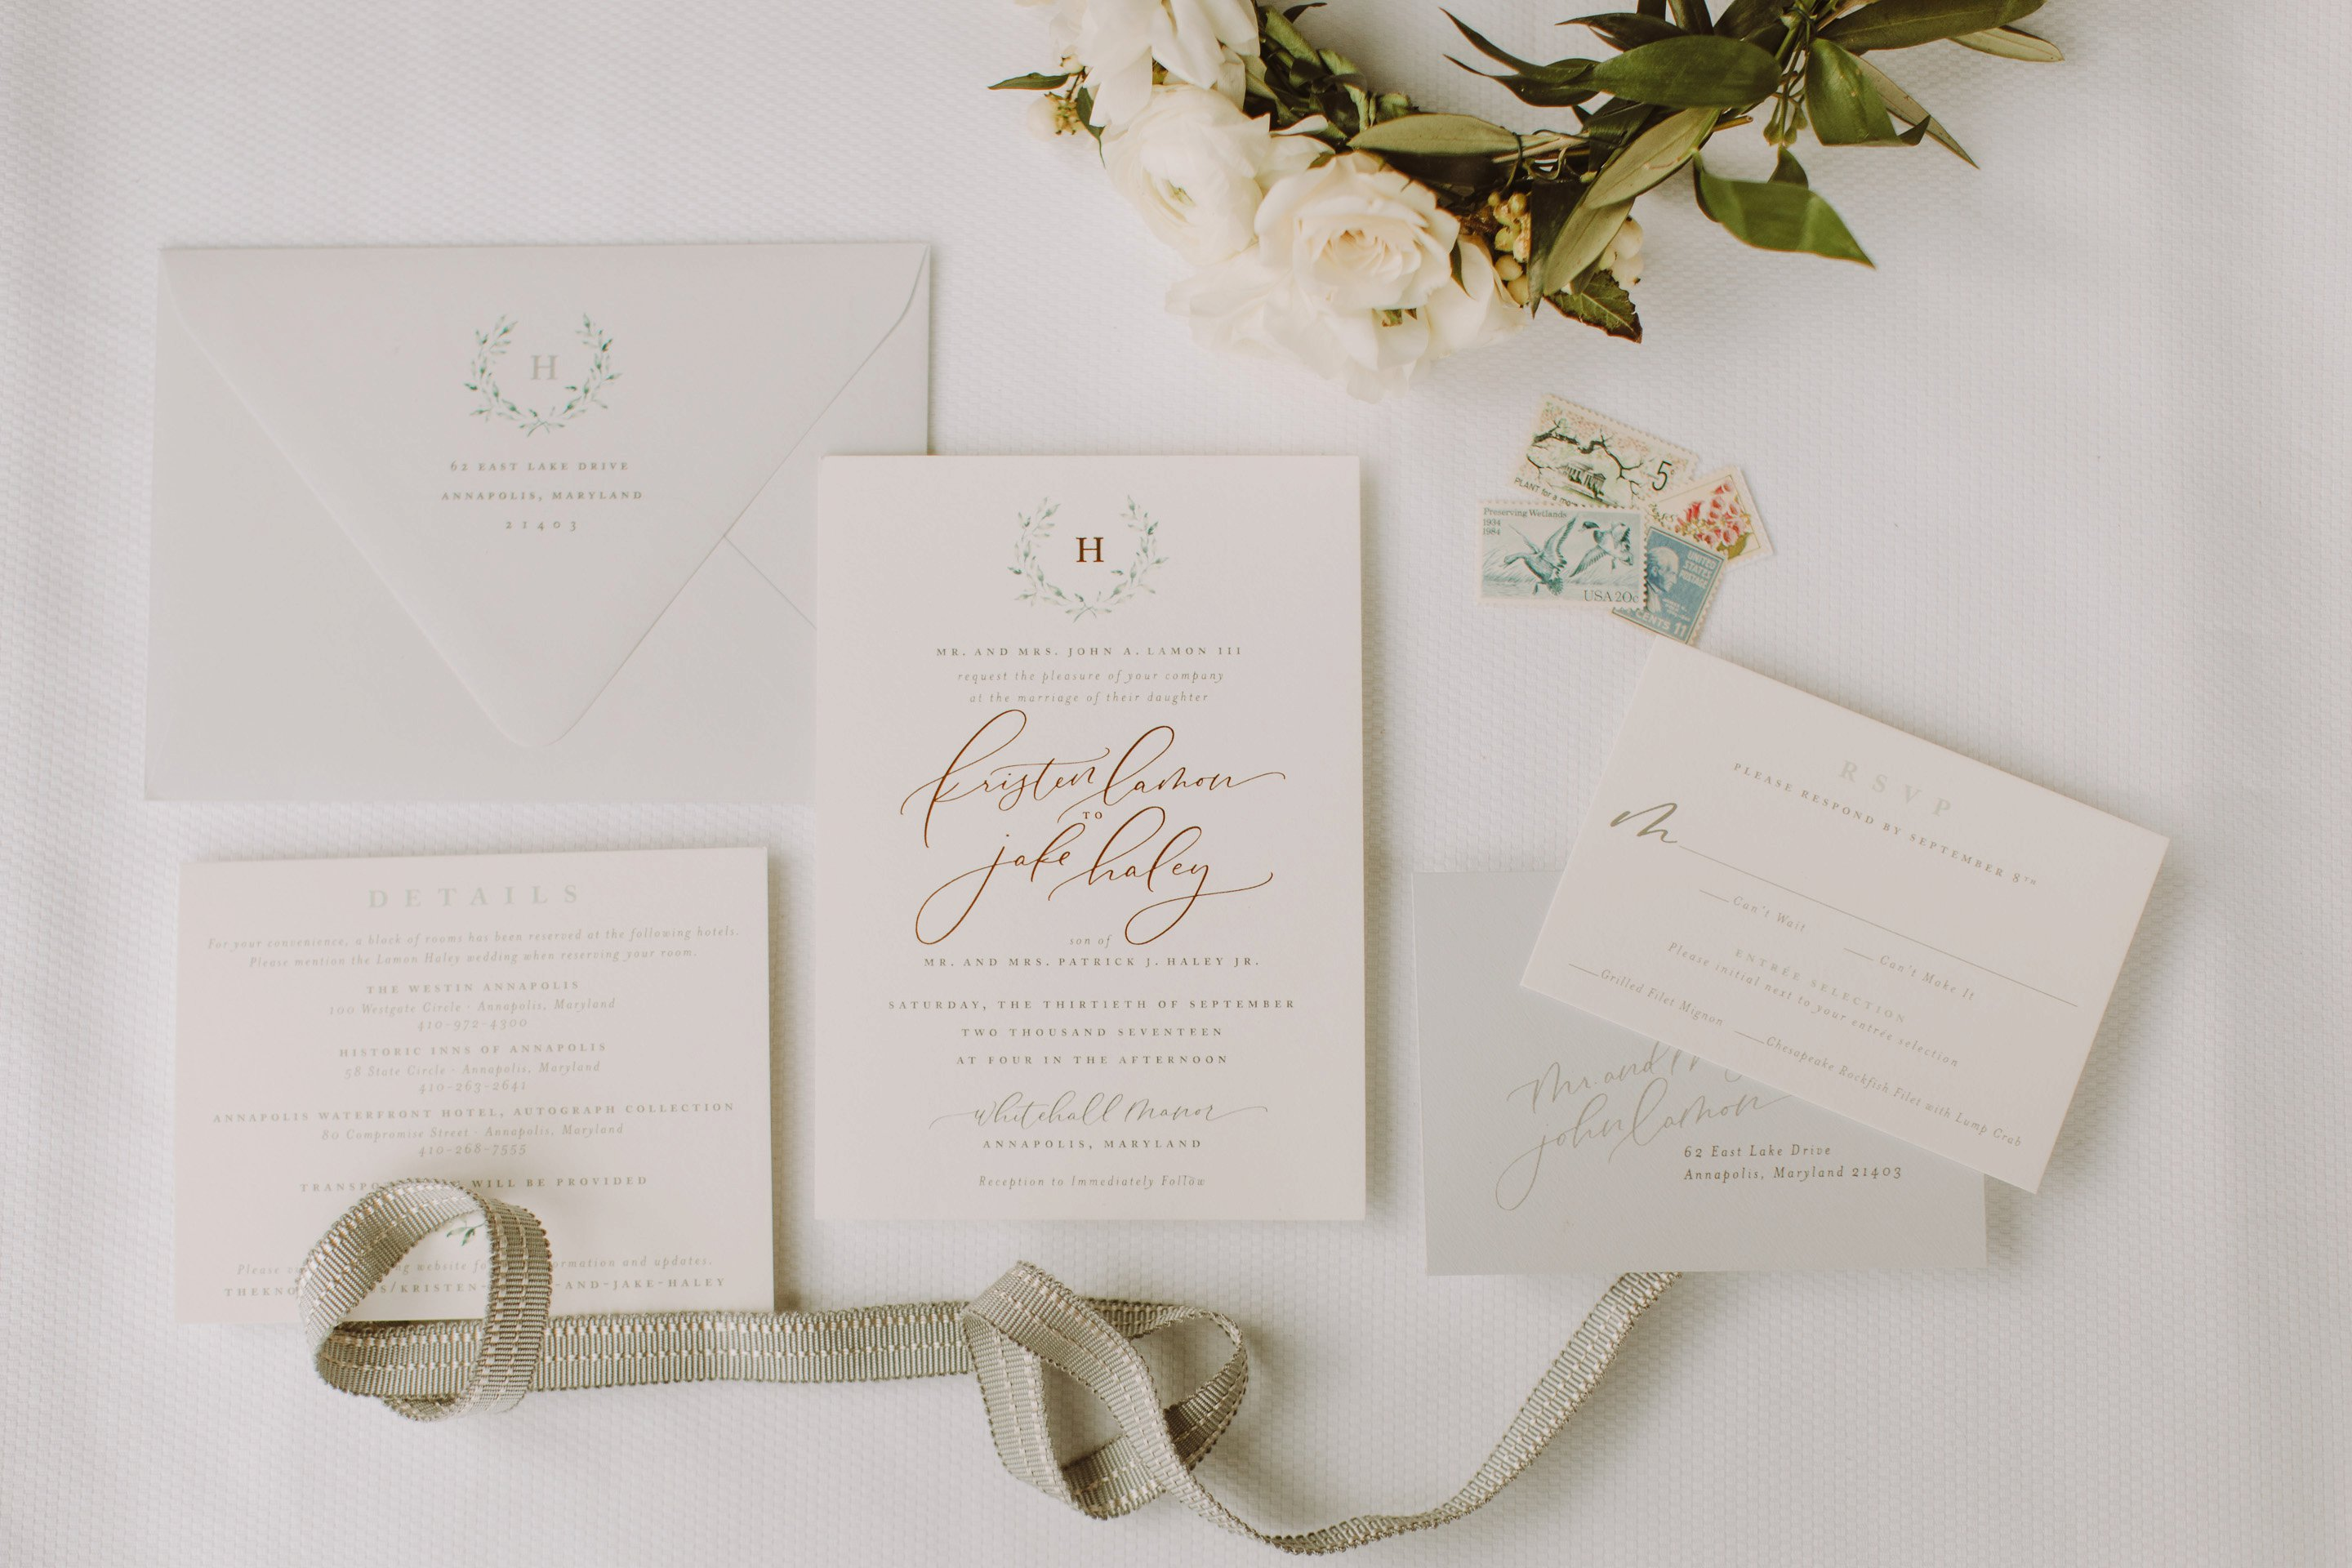 Stephaniebdesign wedding invitations Annapolis wedding photographer